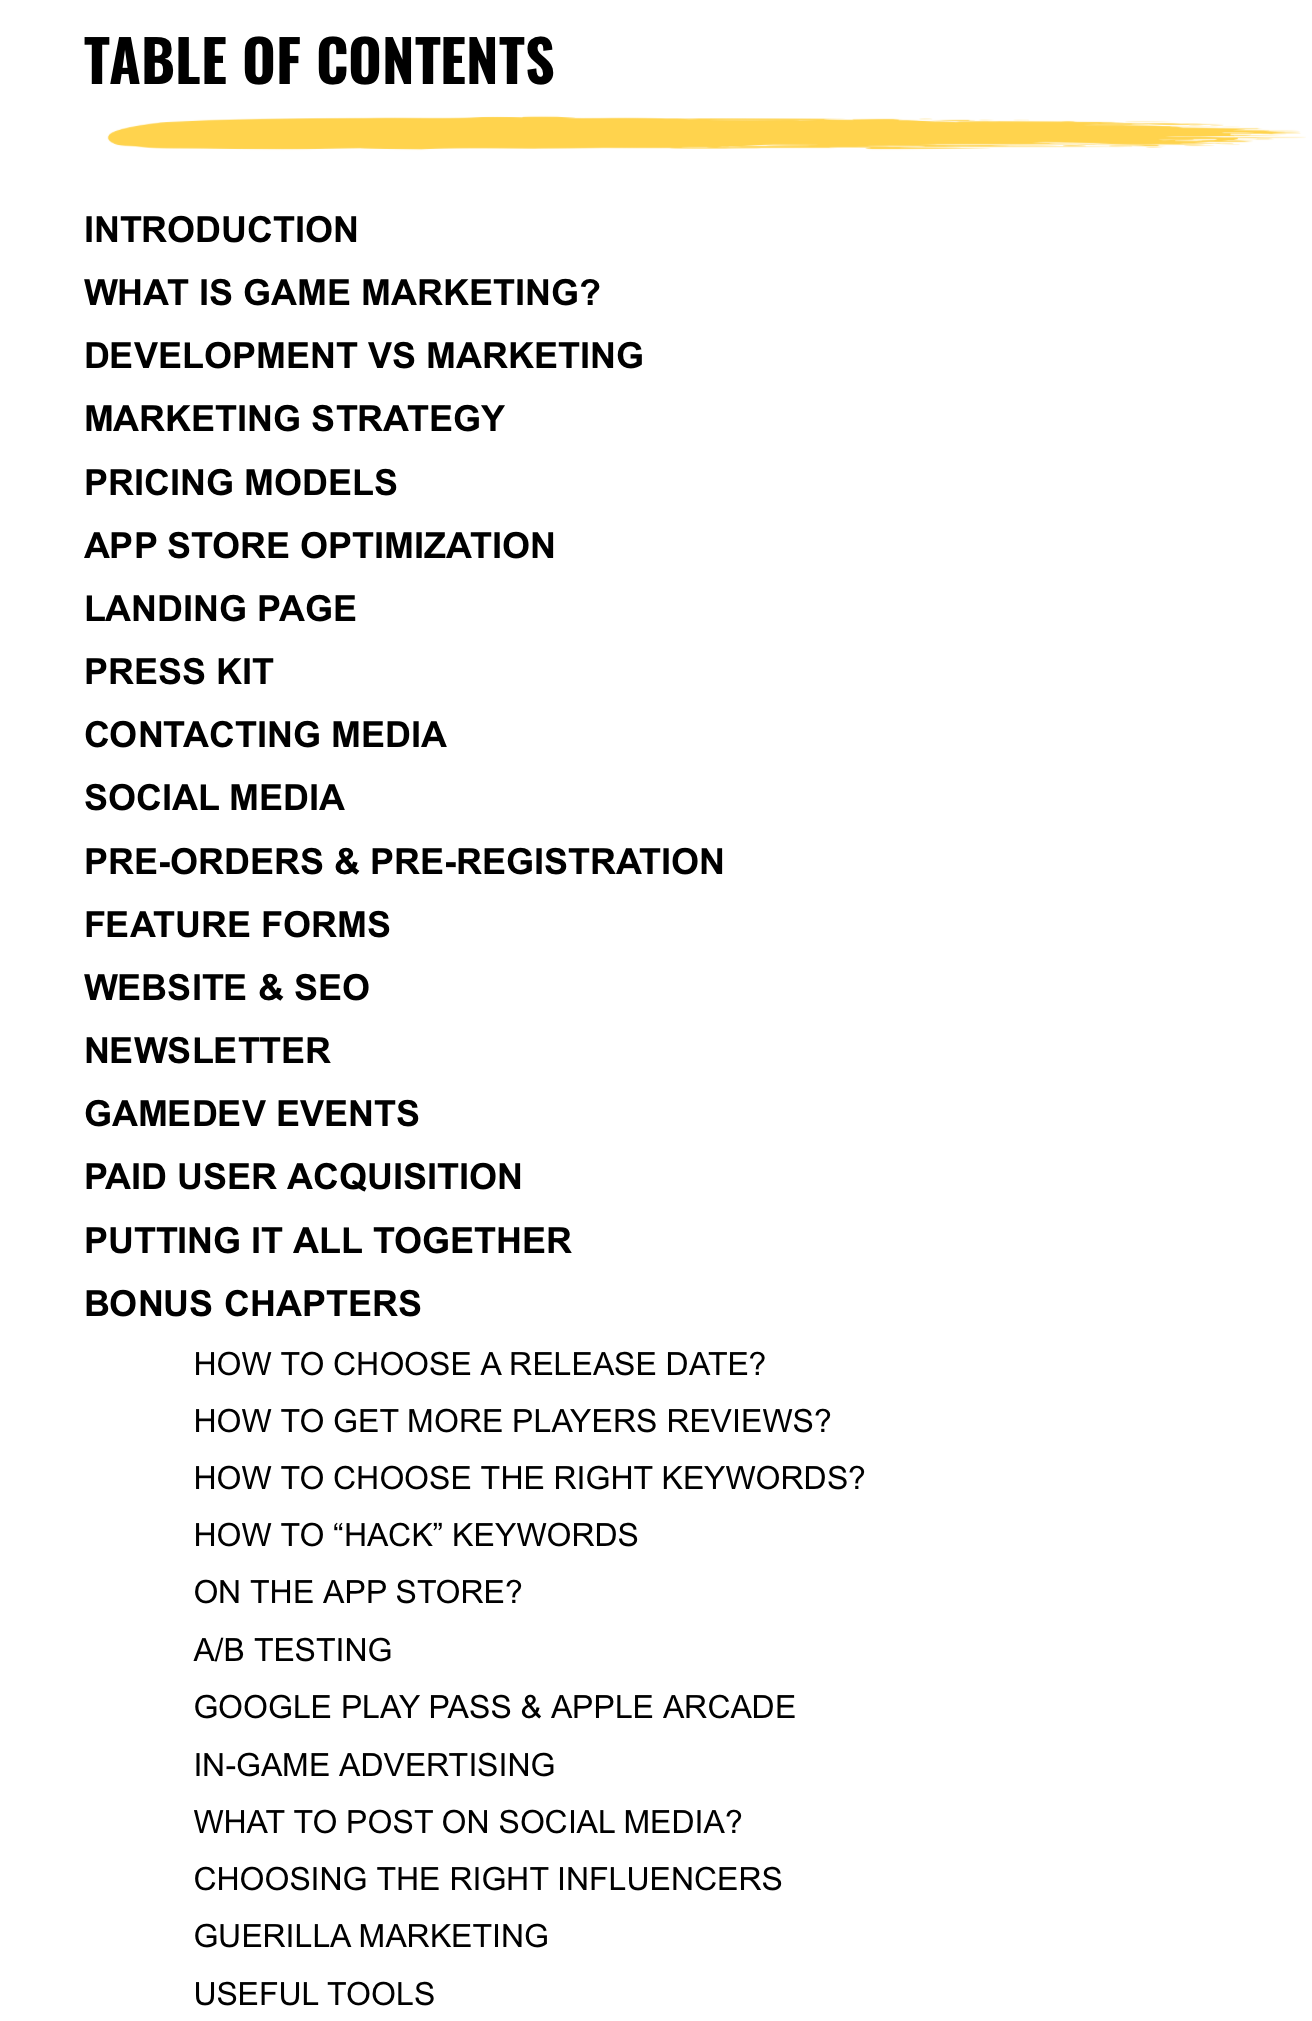 Mobile Games Marketing - Table of Contents